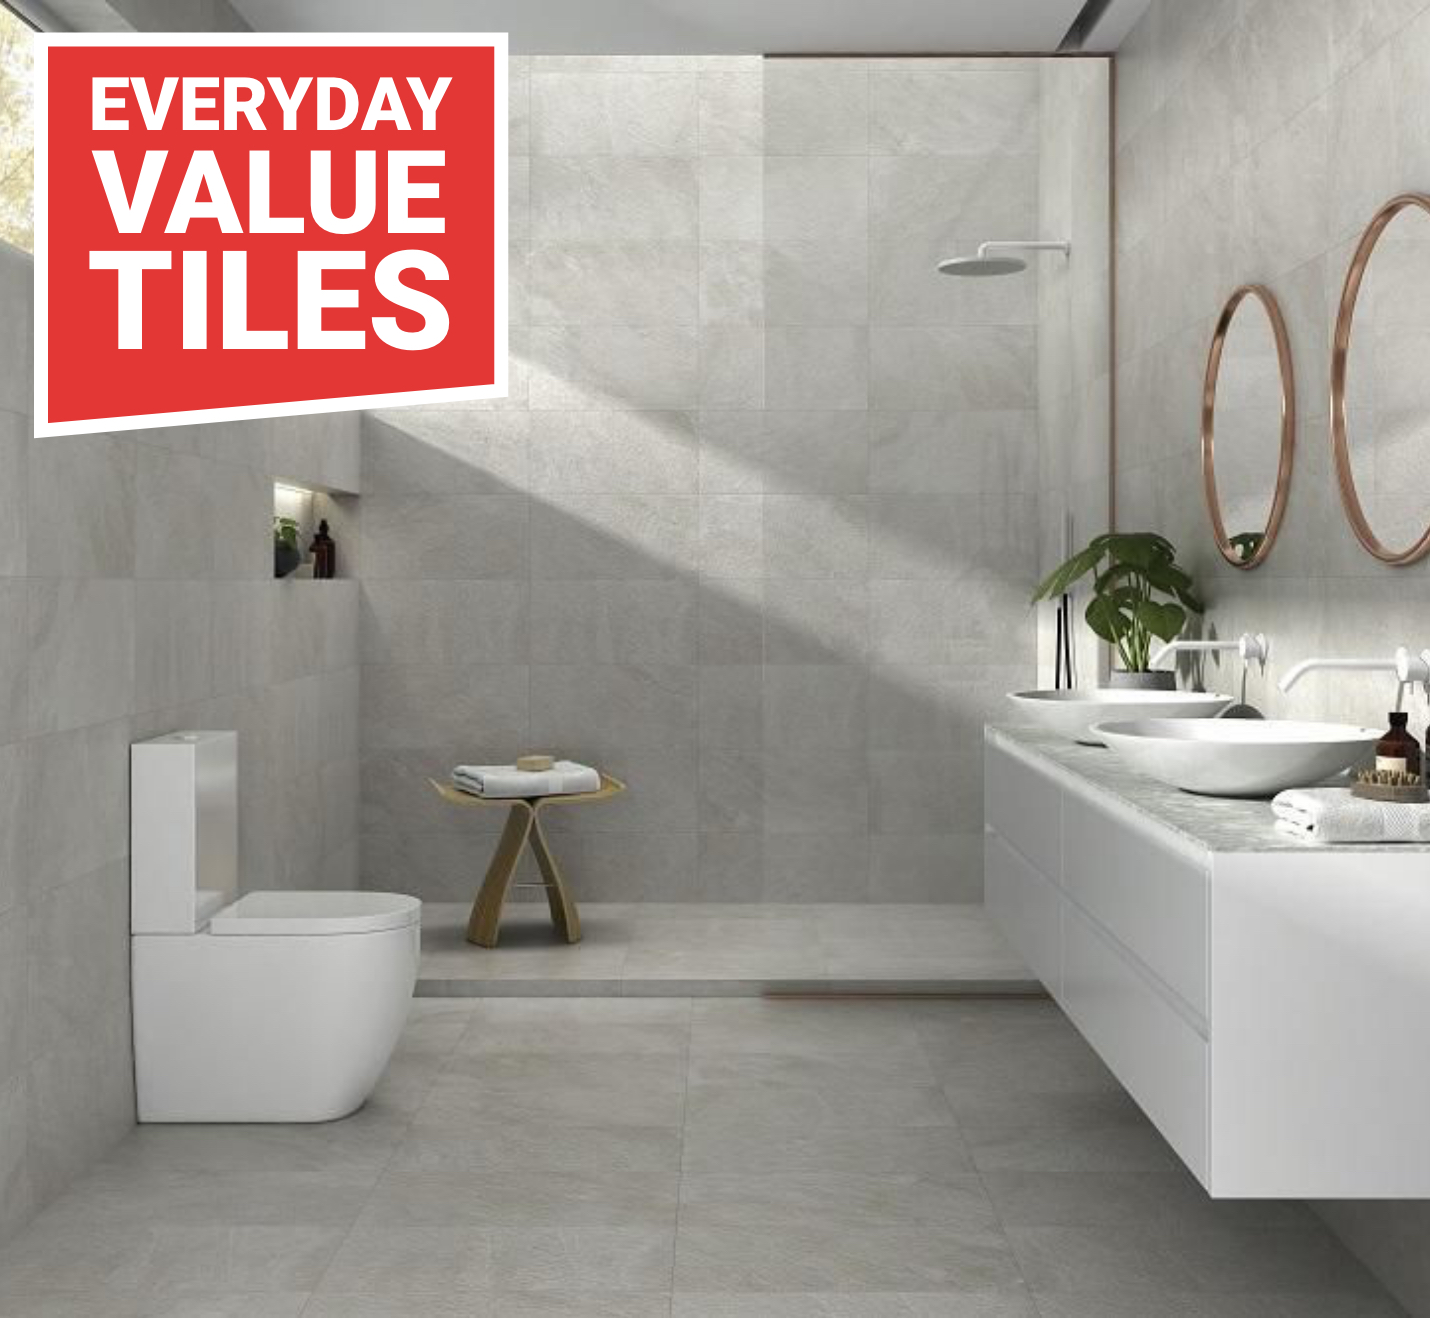 Everyday Value Tiles